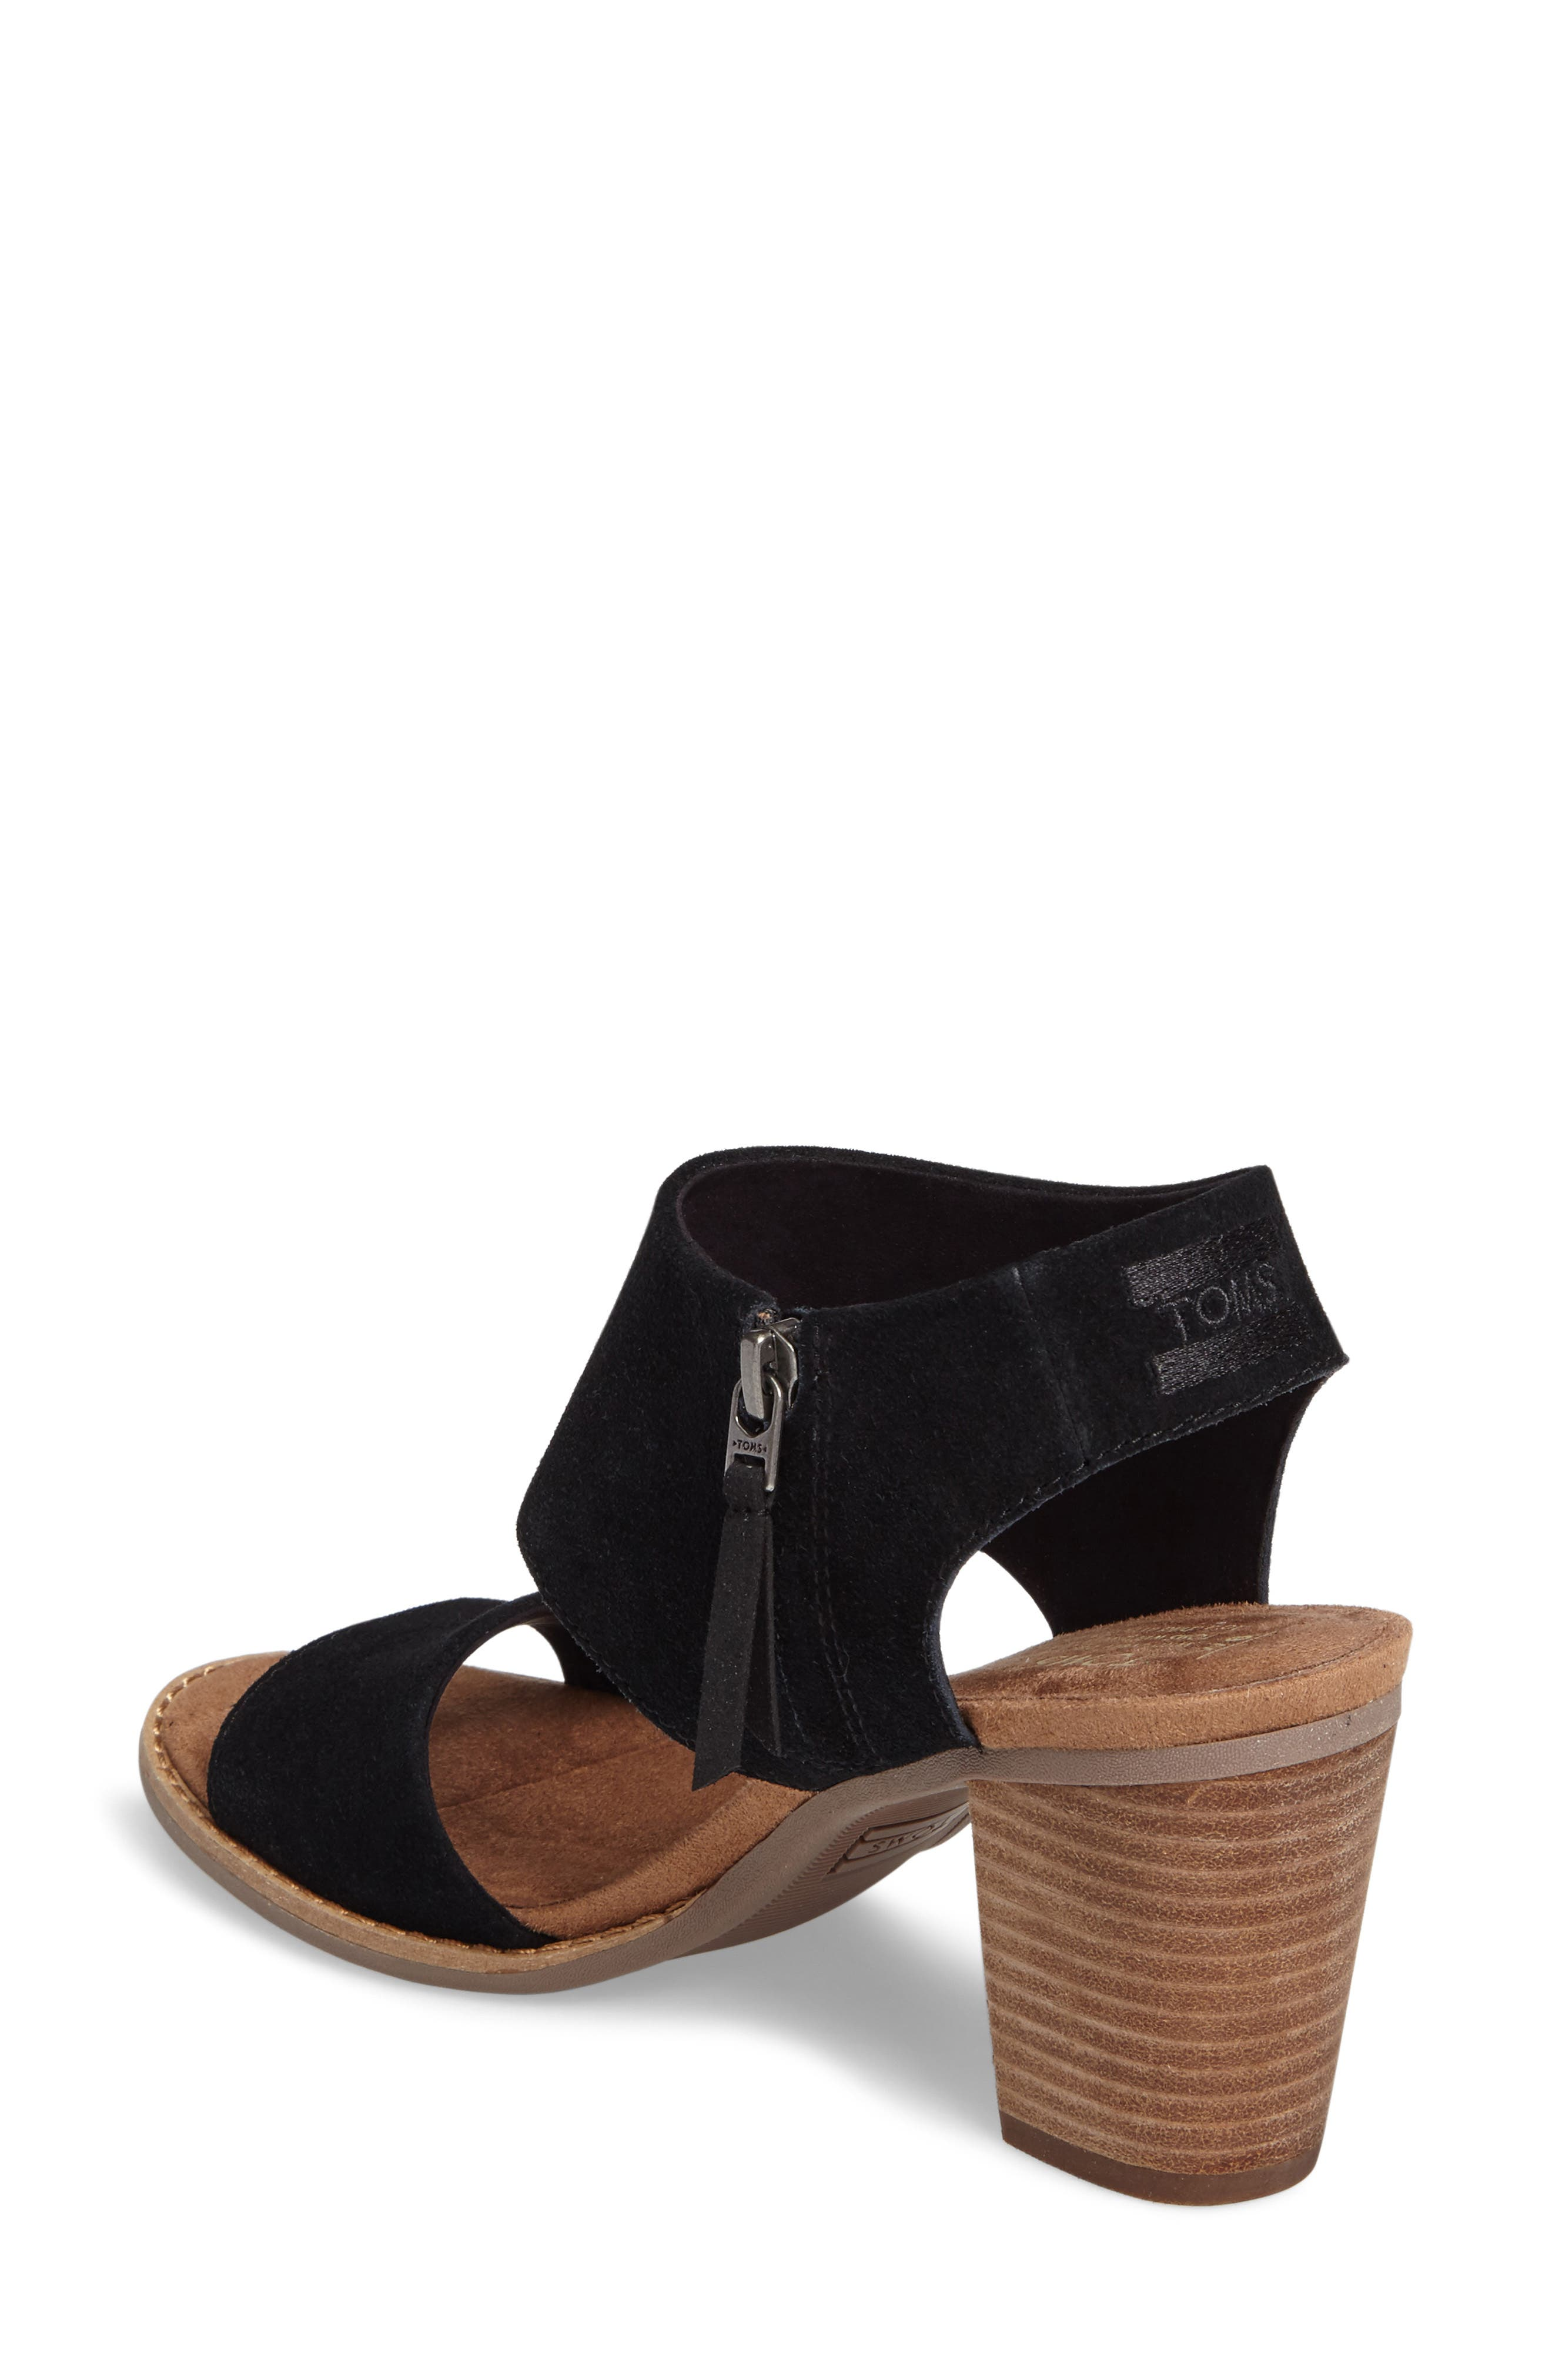 Majorca Sandal,                             Alternate thumbnail 2, color,                             BLACK